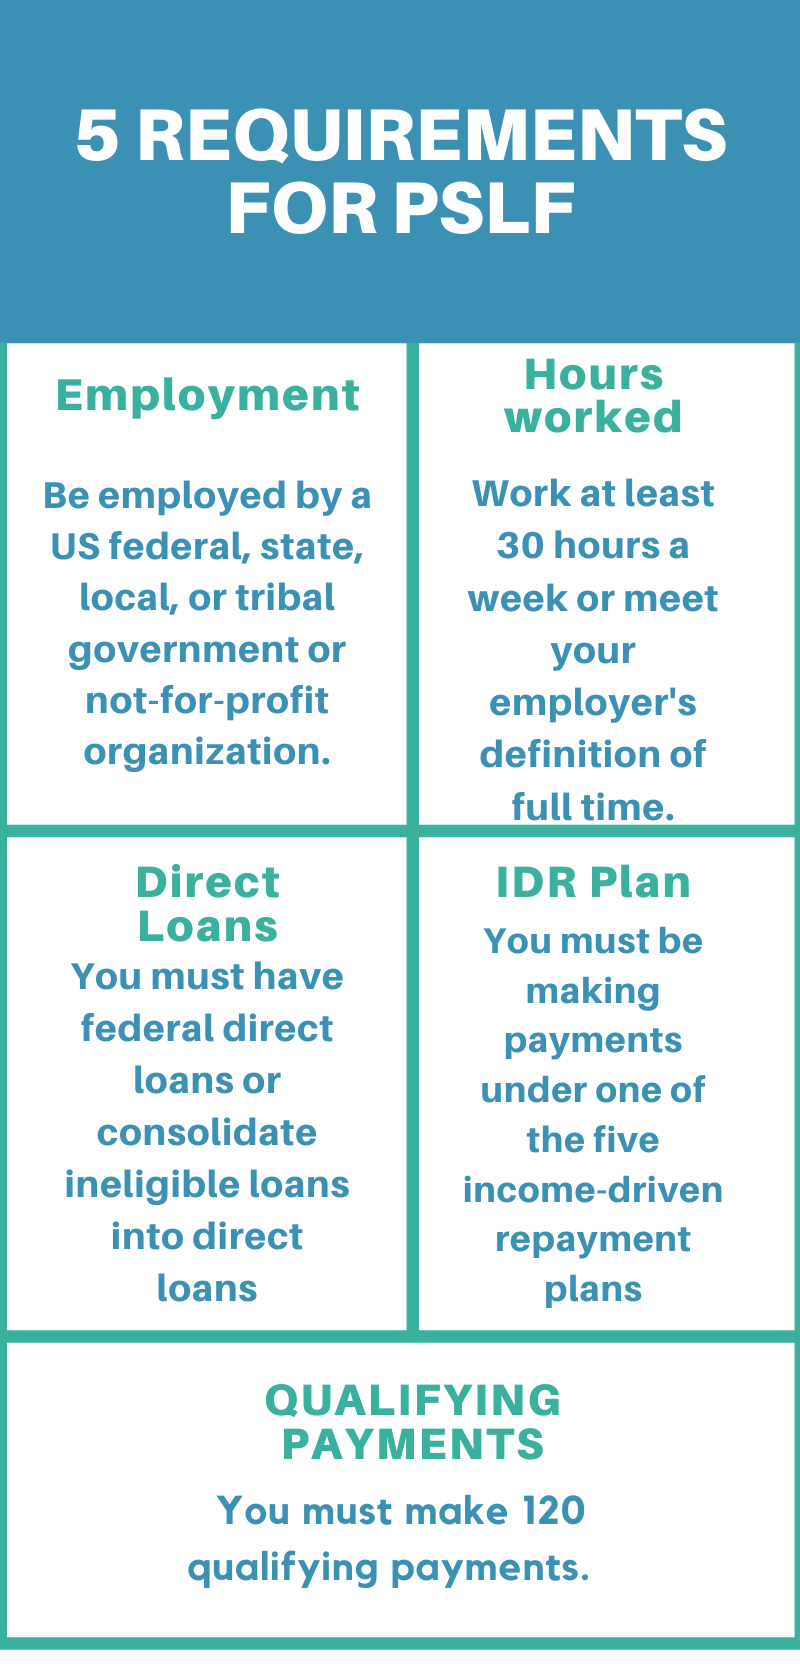 how to qualify for public service loan forgiveness